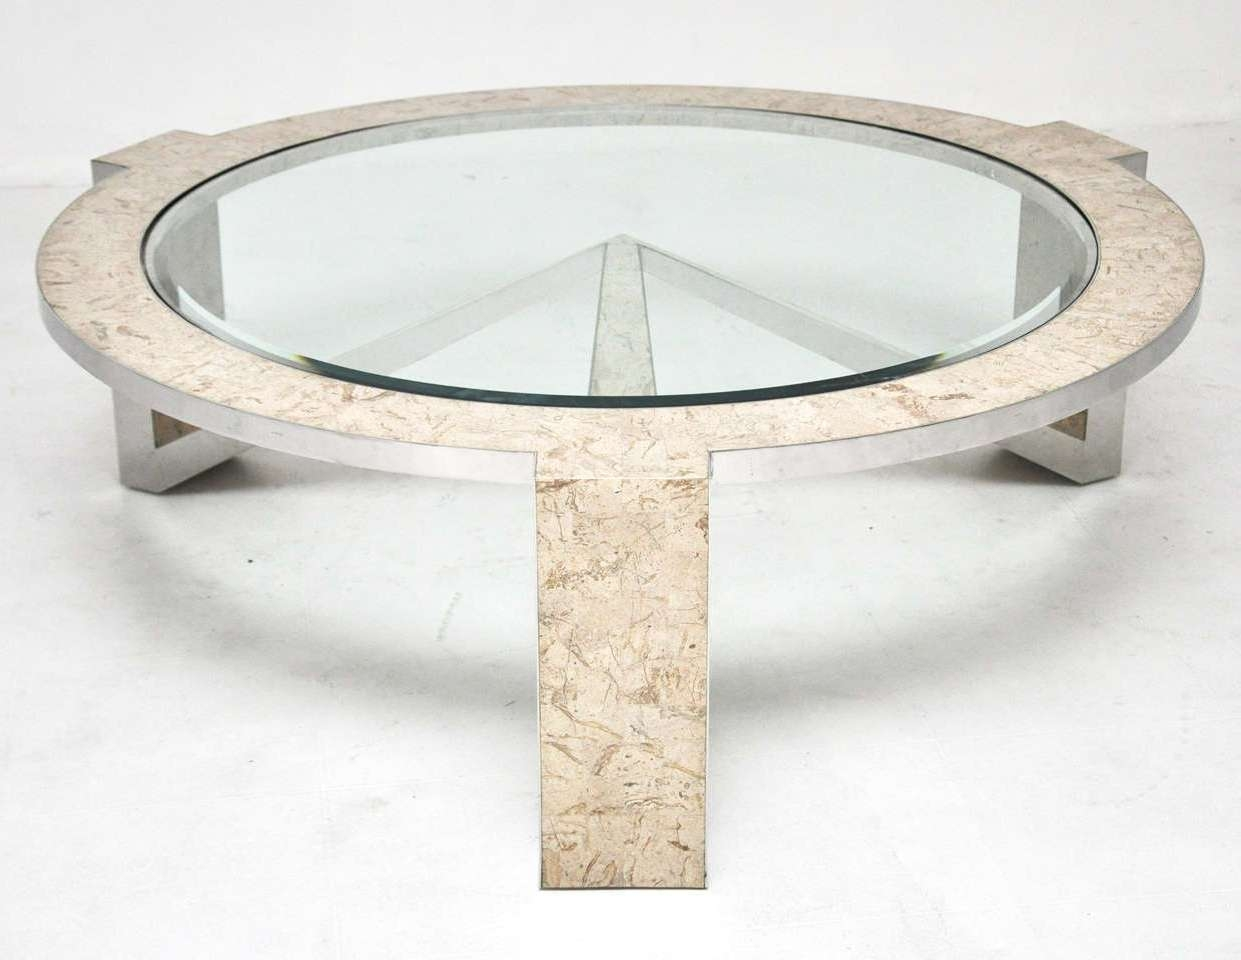 Classy Stone And Glass Coffee Tables For Home Interior Design Throughout Trendy Glass And Stone Coffee Table (View 8 of 20)